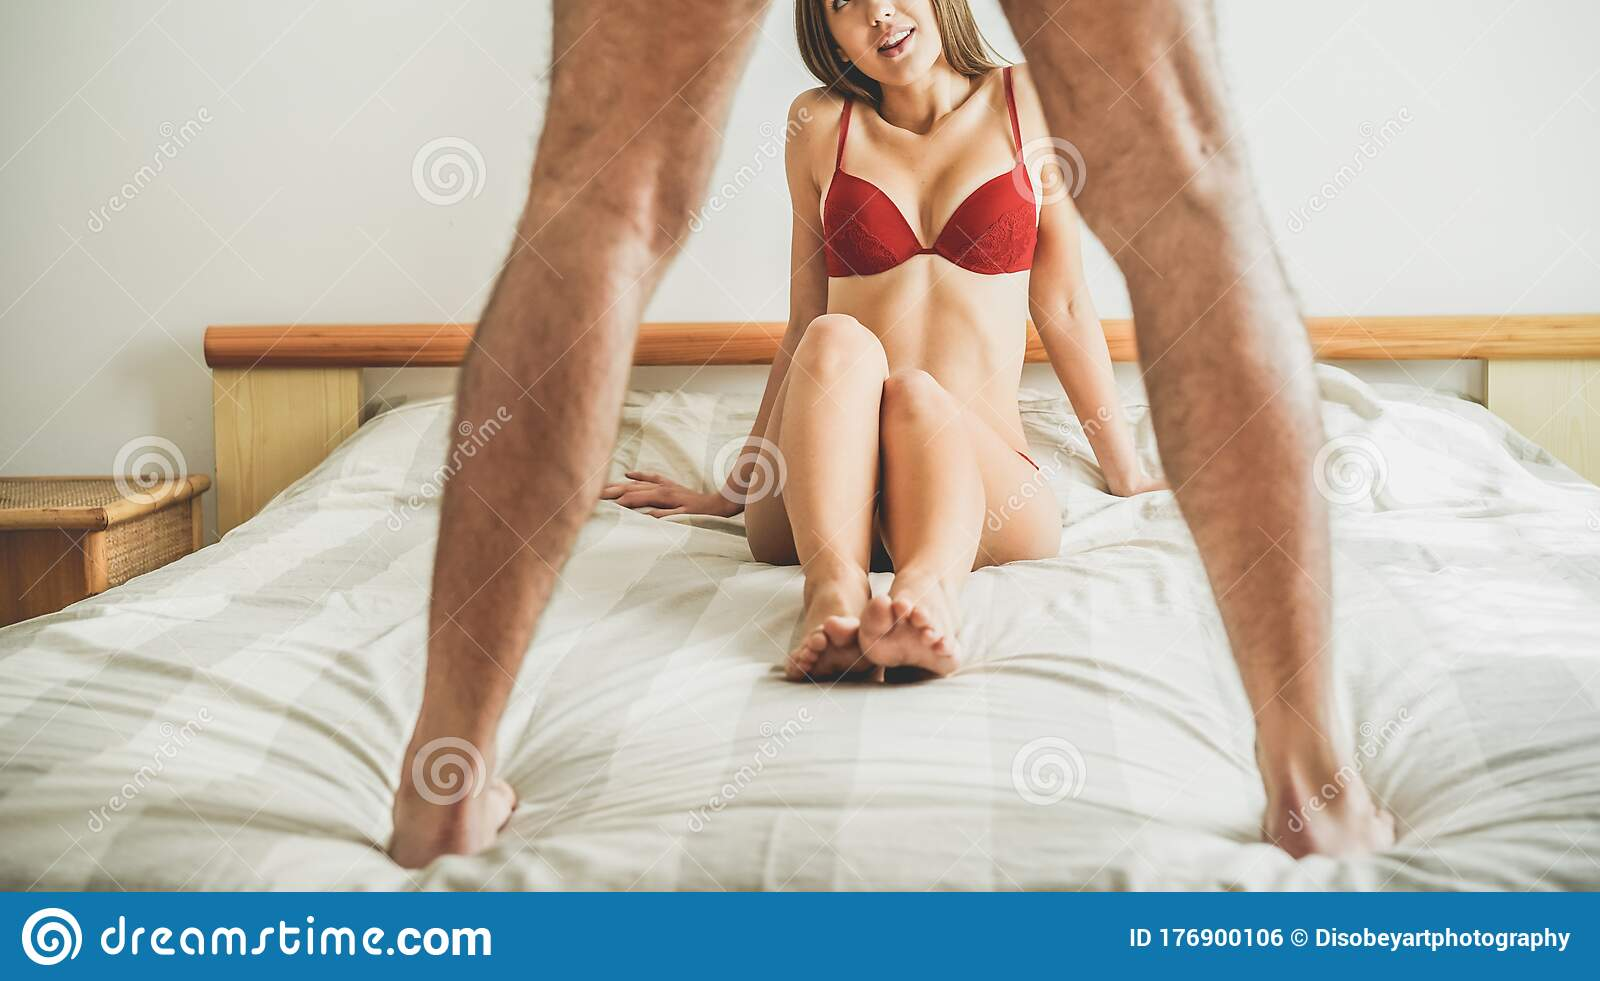 To sex have looking women MeetMatures